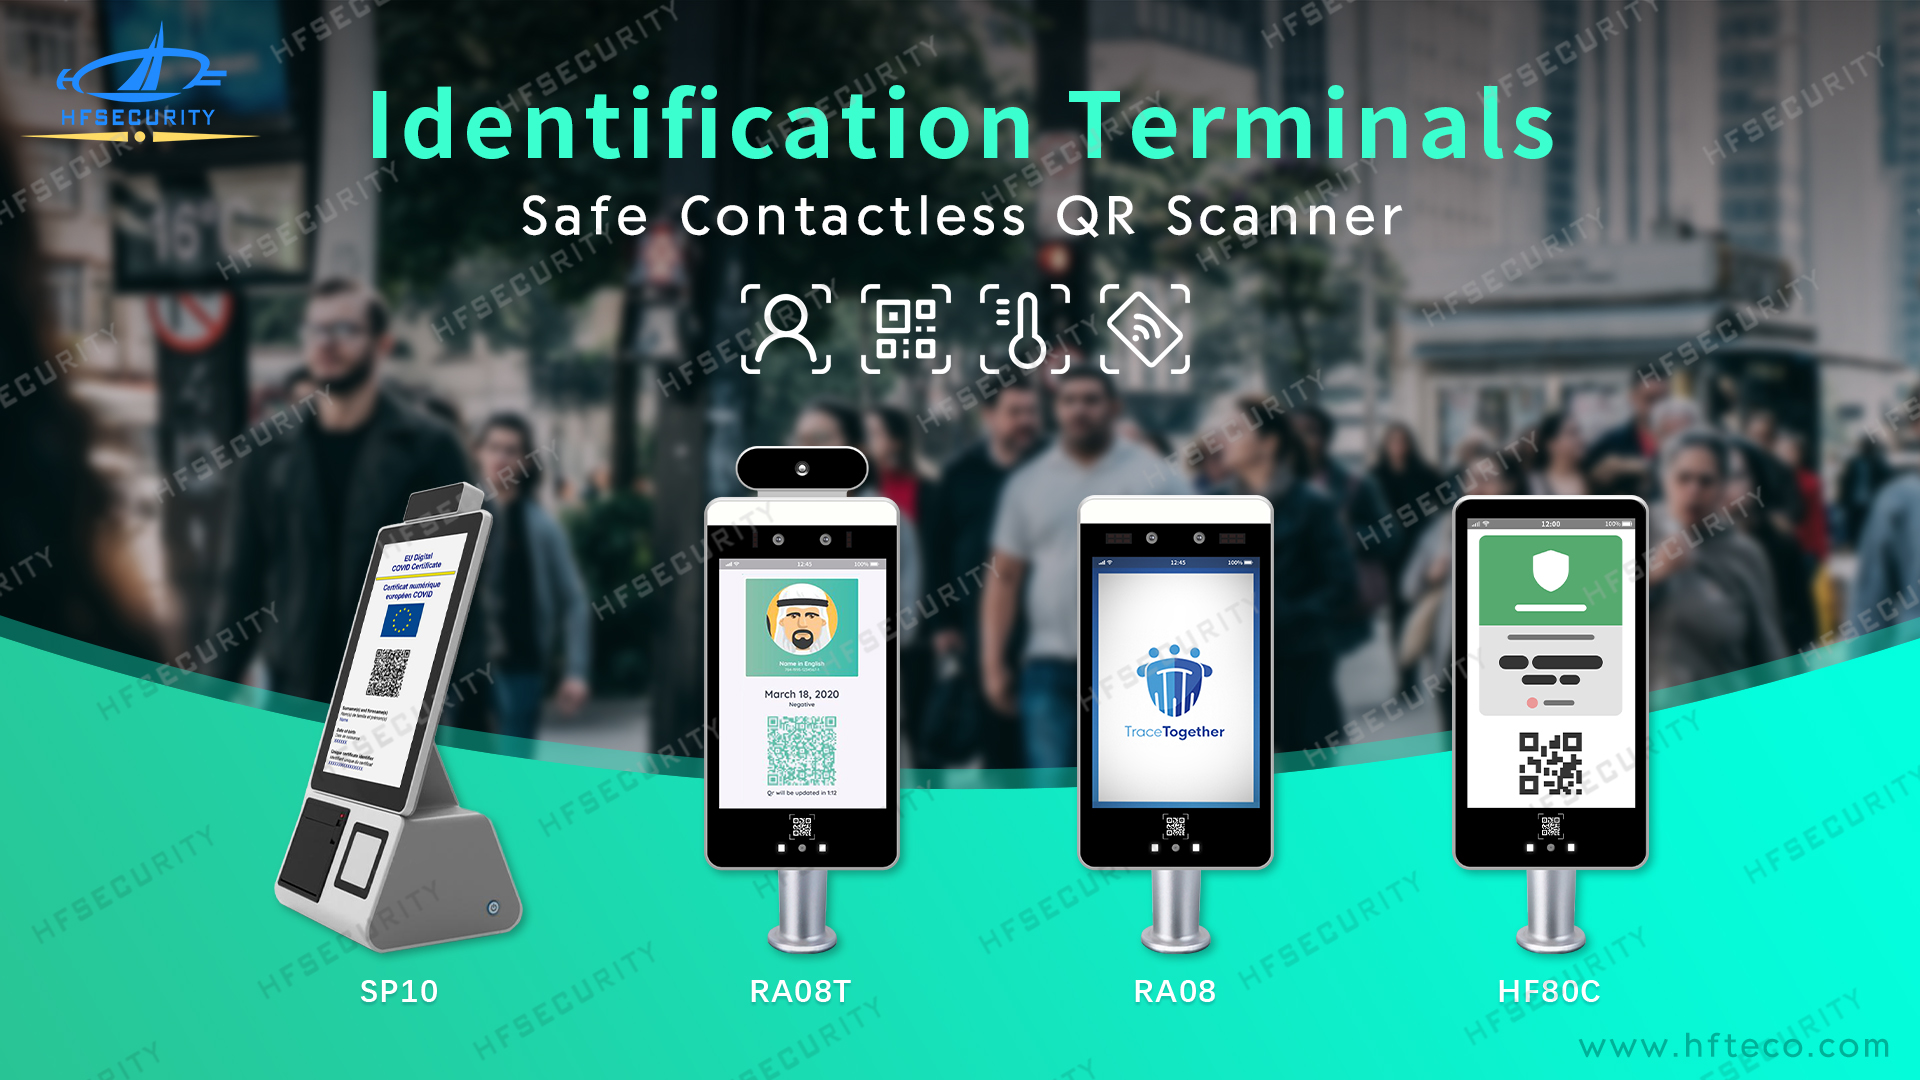 HFSecurity How To Buy Facial Recognition Thermal Scanner